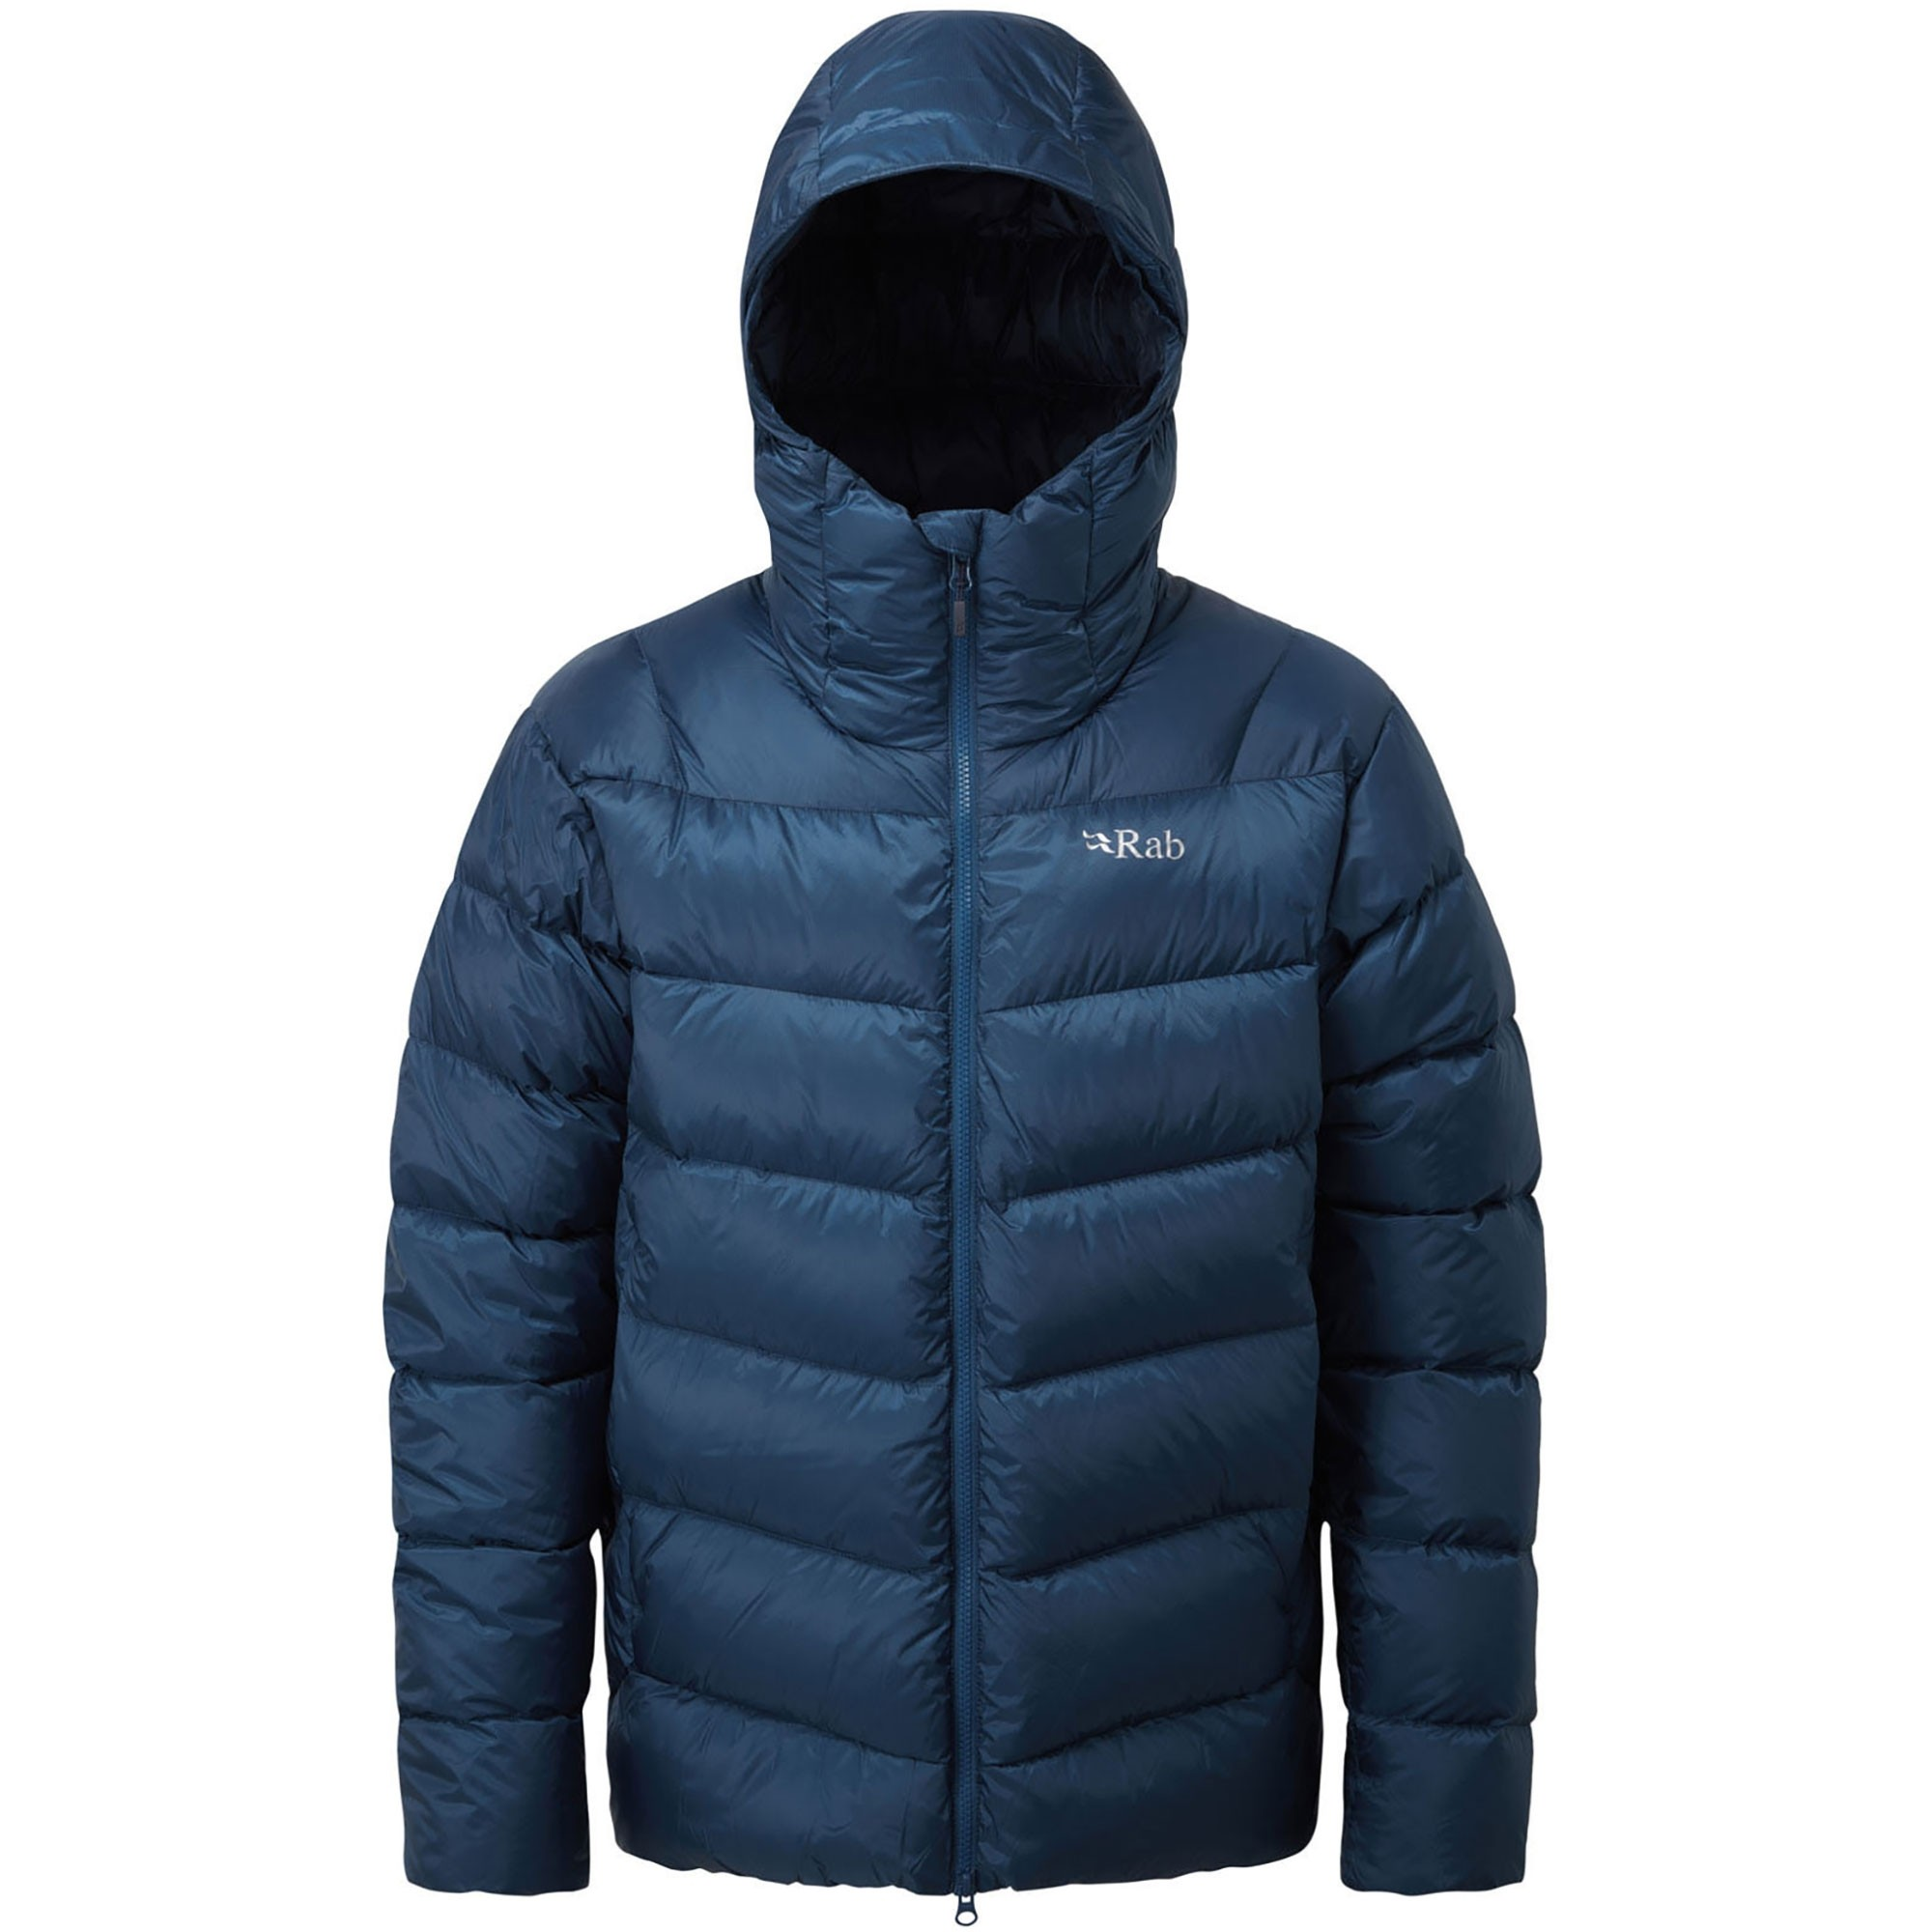 Rab Neutrino Pro Down Jacket - Ink